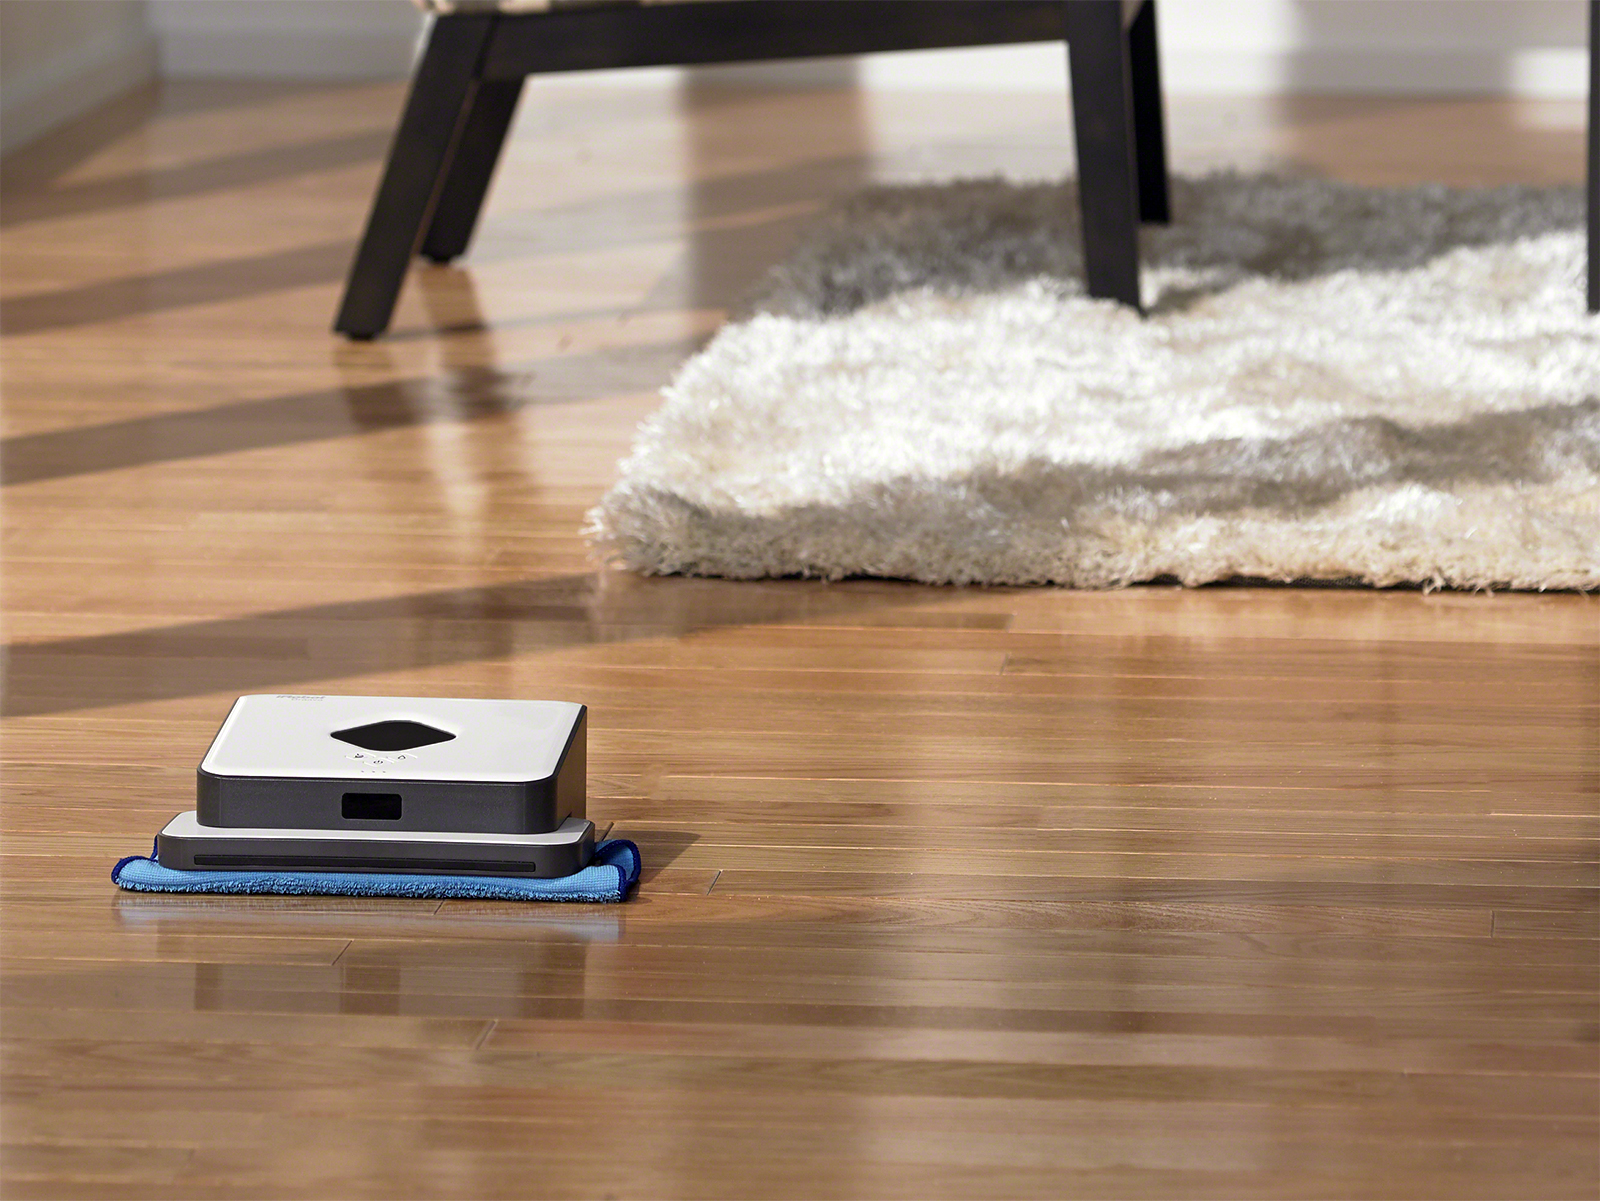 This New Domestic Cobot By Irobot Will Allow You To Clean Simply Your Hard Floors Tiling Vinyl Parquet And Laminated A Simple Intuitive Using